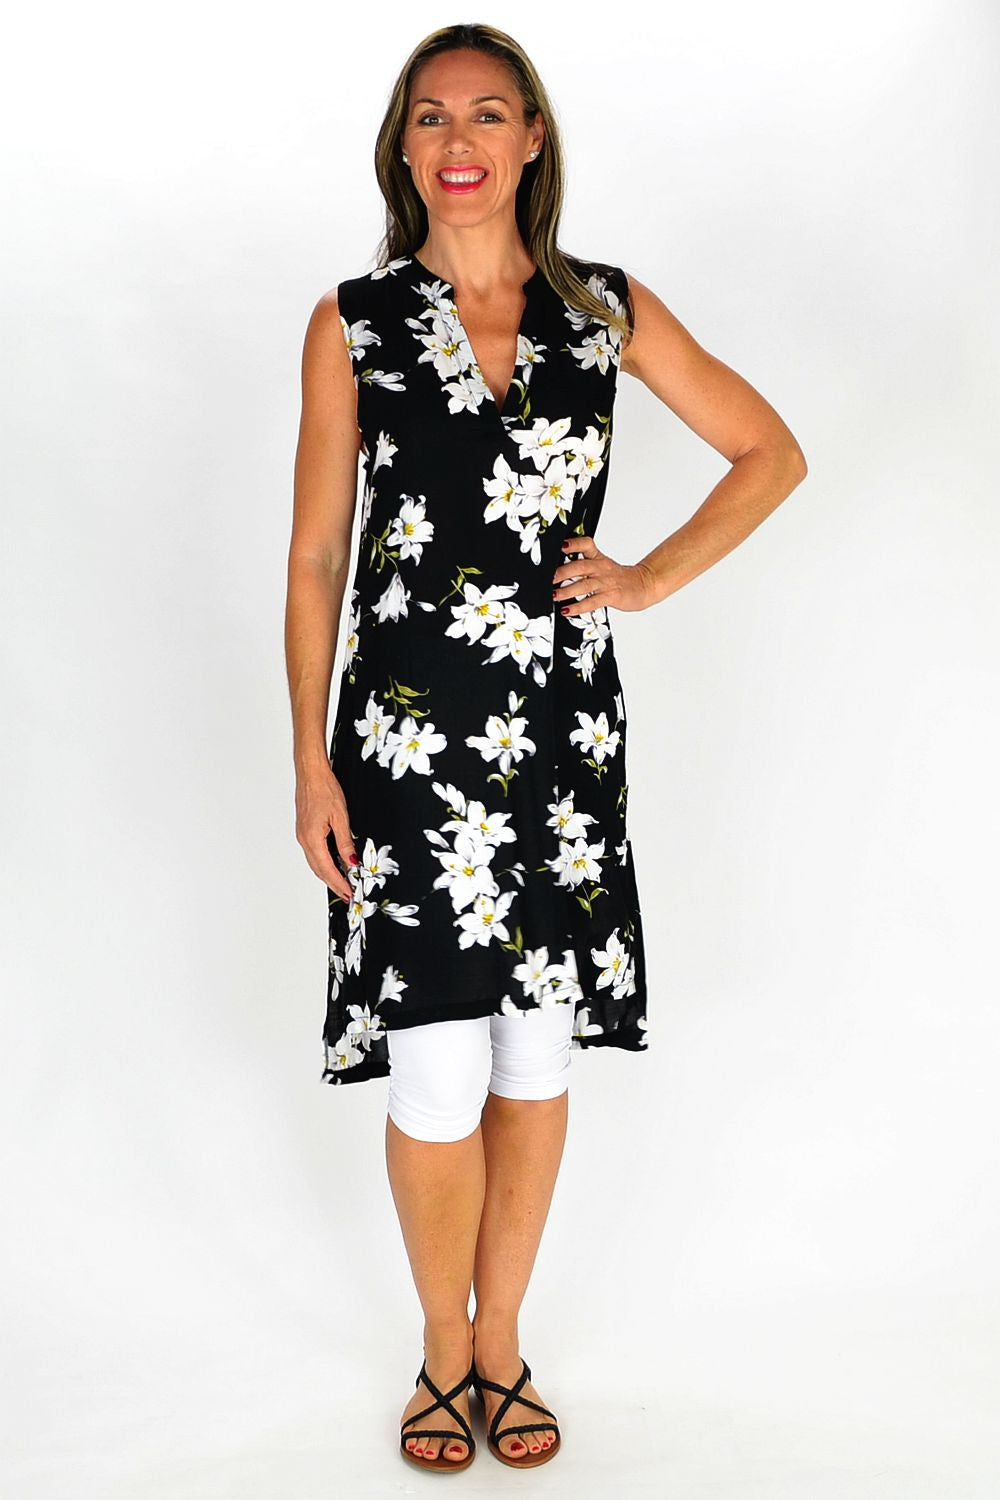 White Lily Tunic - at I Love Tunics @ www.ilovetunics.com = Number One! Tunics Destination